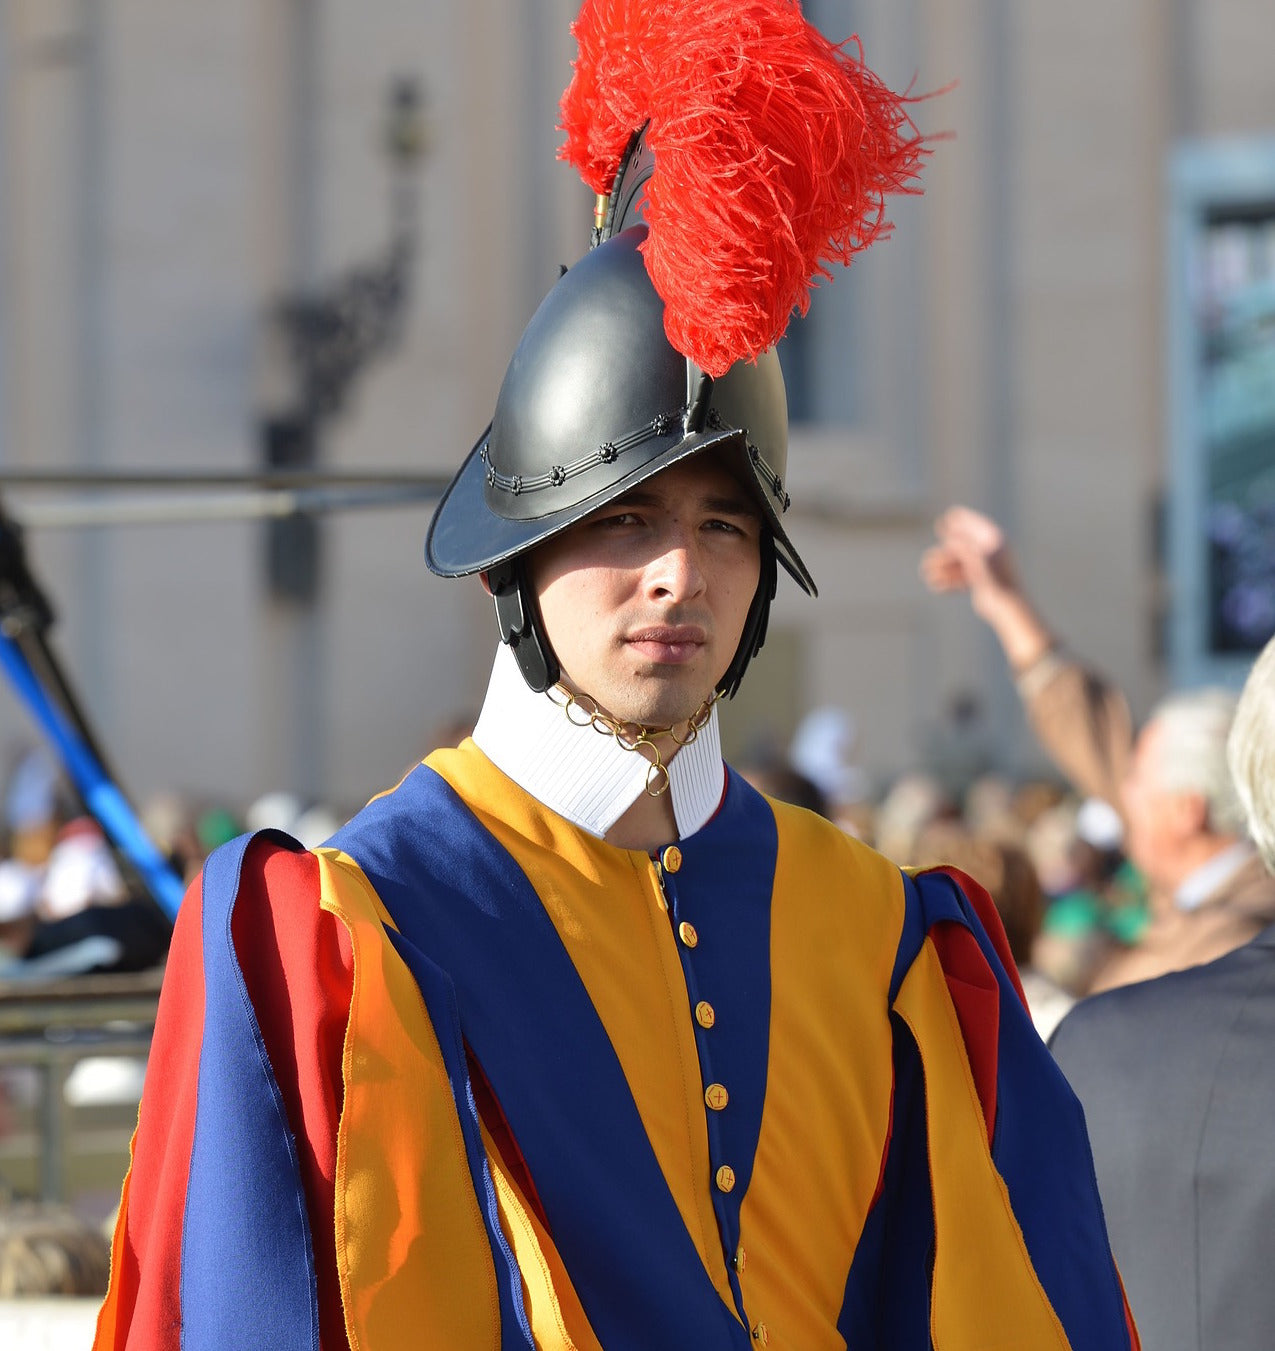 3D Printed Helmets Created for The Pope's Swiss Guard Army